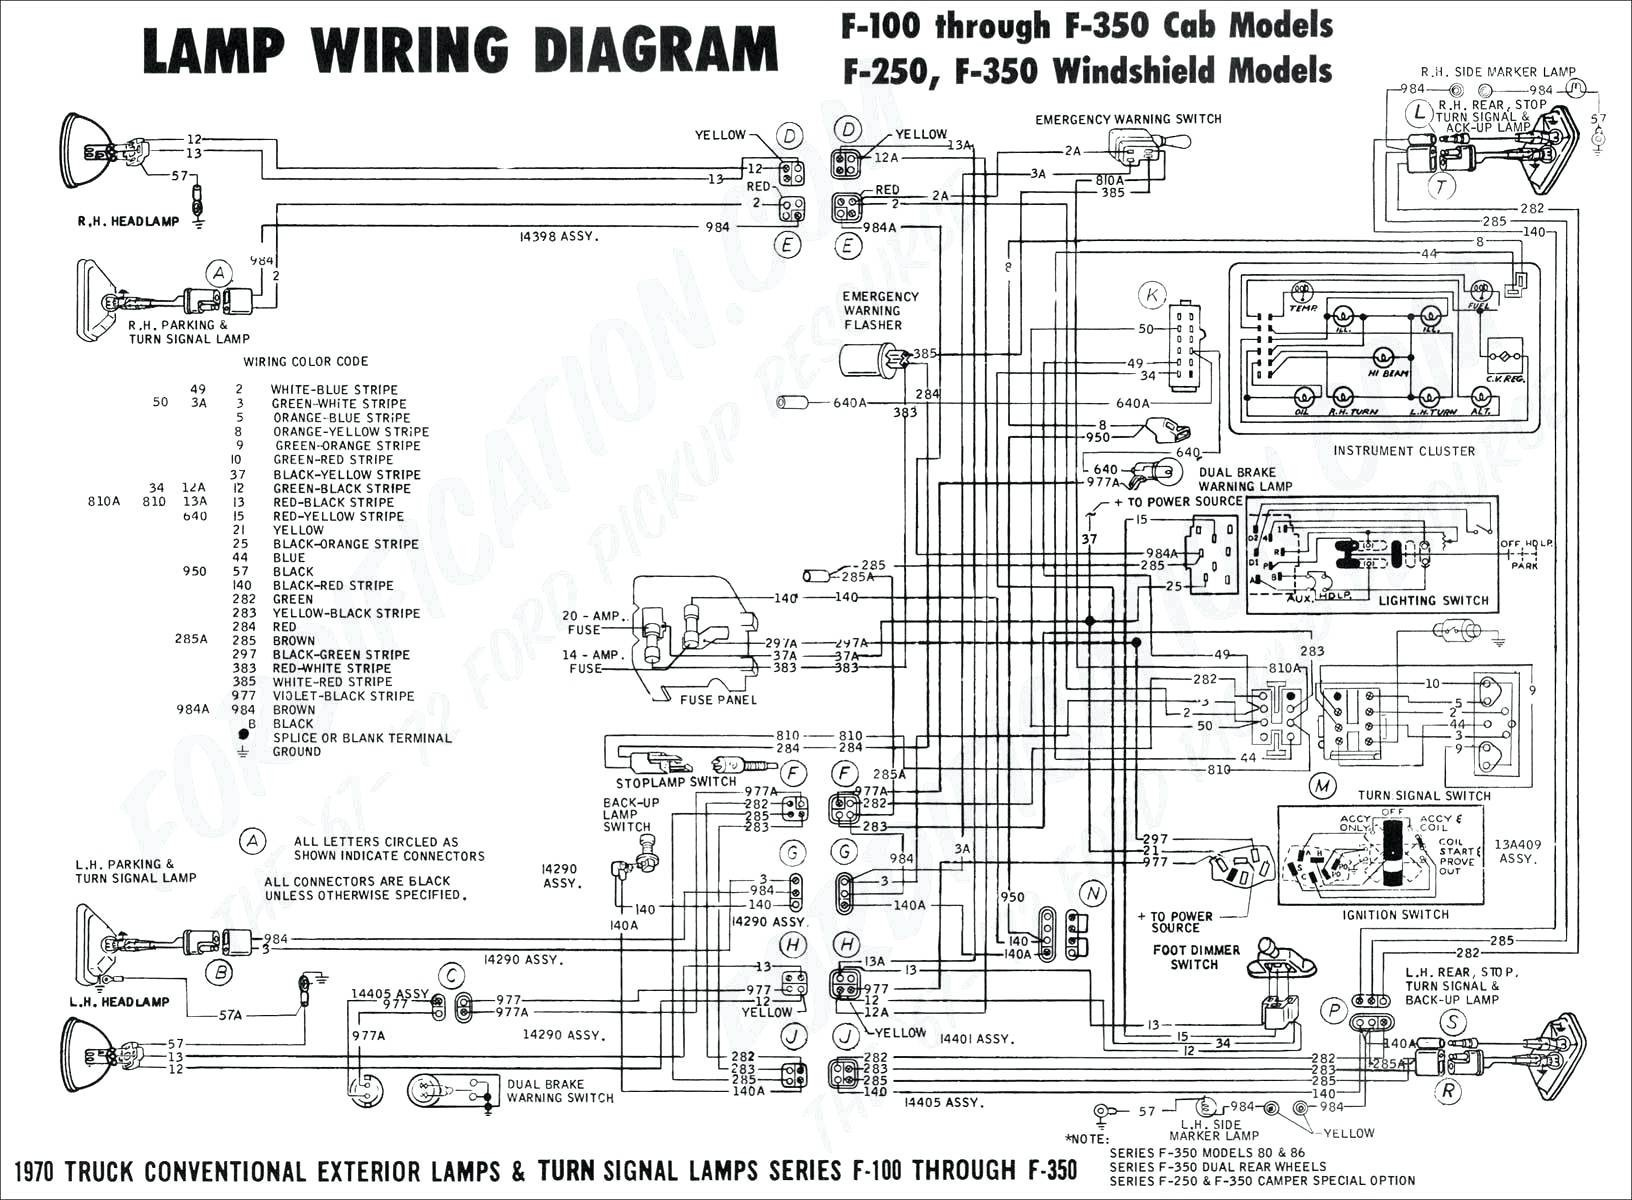 1996 Honda Civic Ex Engine Diagram Honda Civic Wiring Schematics Wiring Diagram Datasource Of 1996 Honda Civic Ex Engine Diagram 96 Honda Civic Wiring Diagram Wiring Diagram toolbox